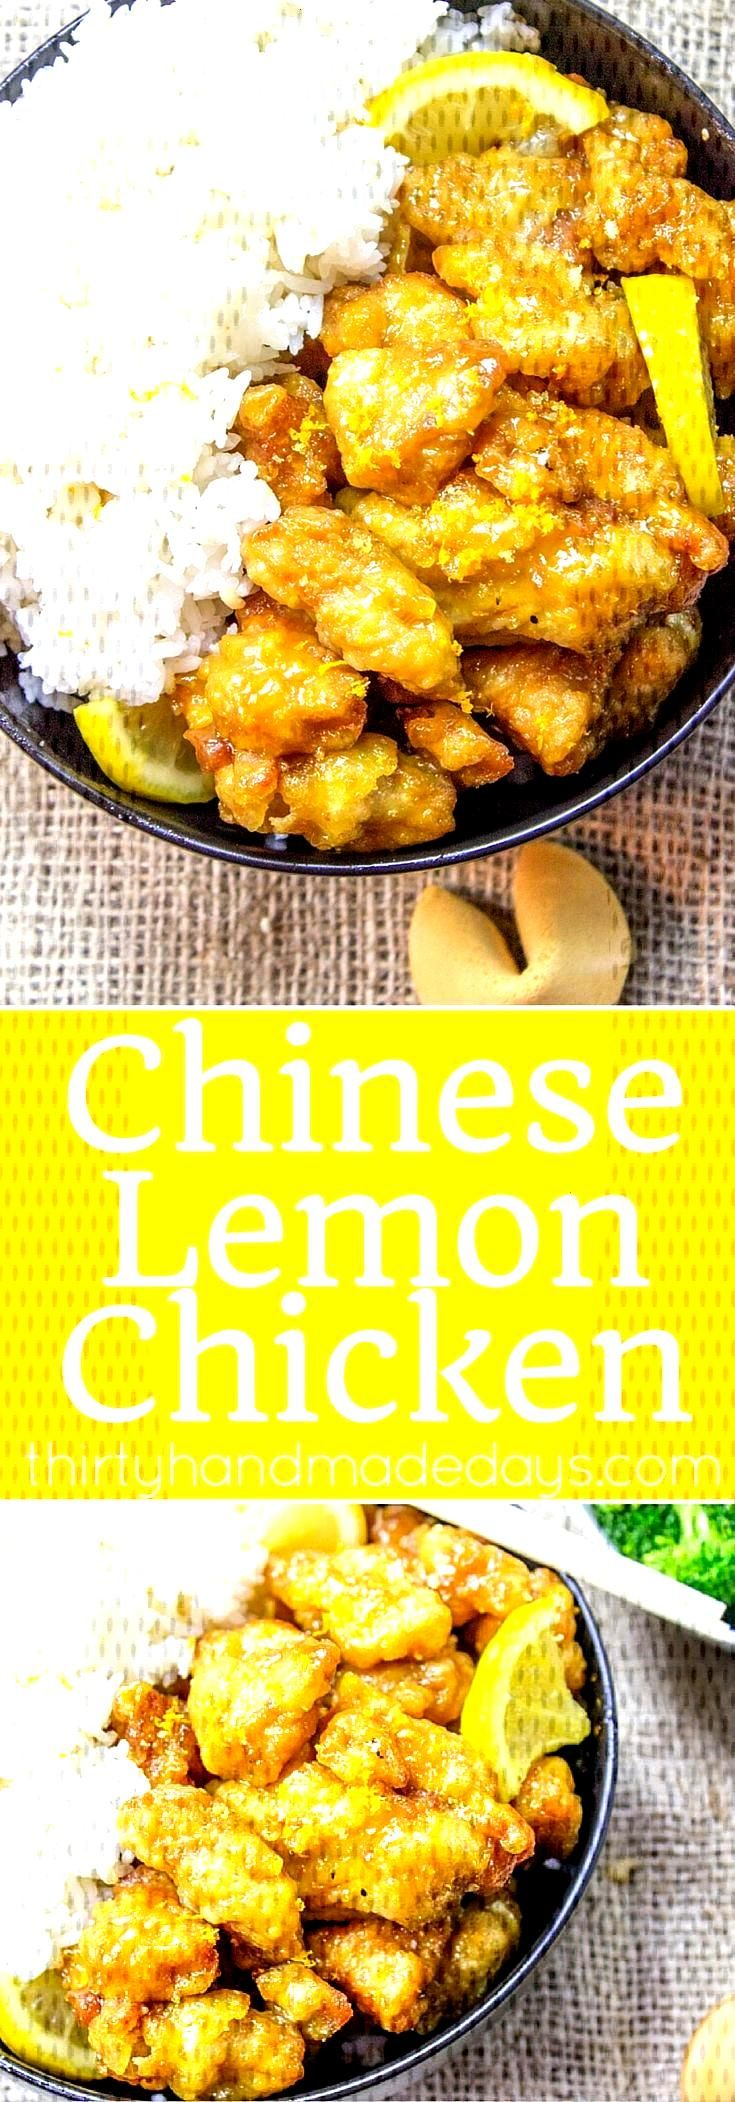 Chinese Lemon Chicken These Glazed Fudgy Lemon Brownies are incredible! Soft, ch... -